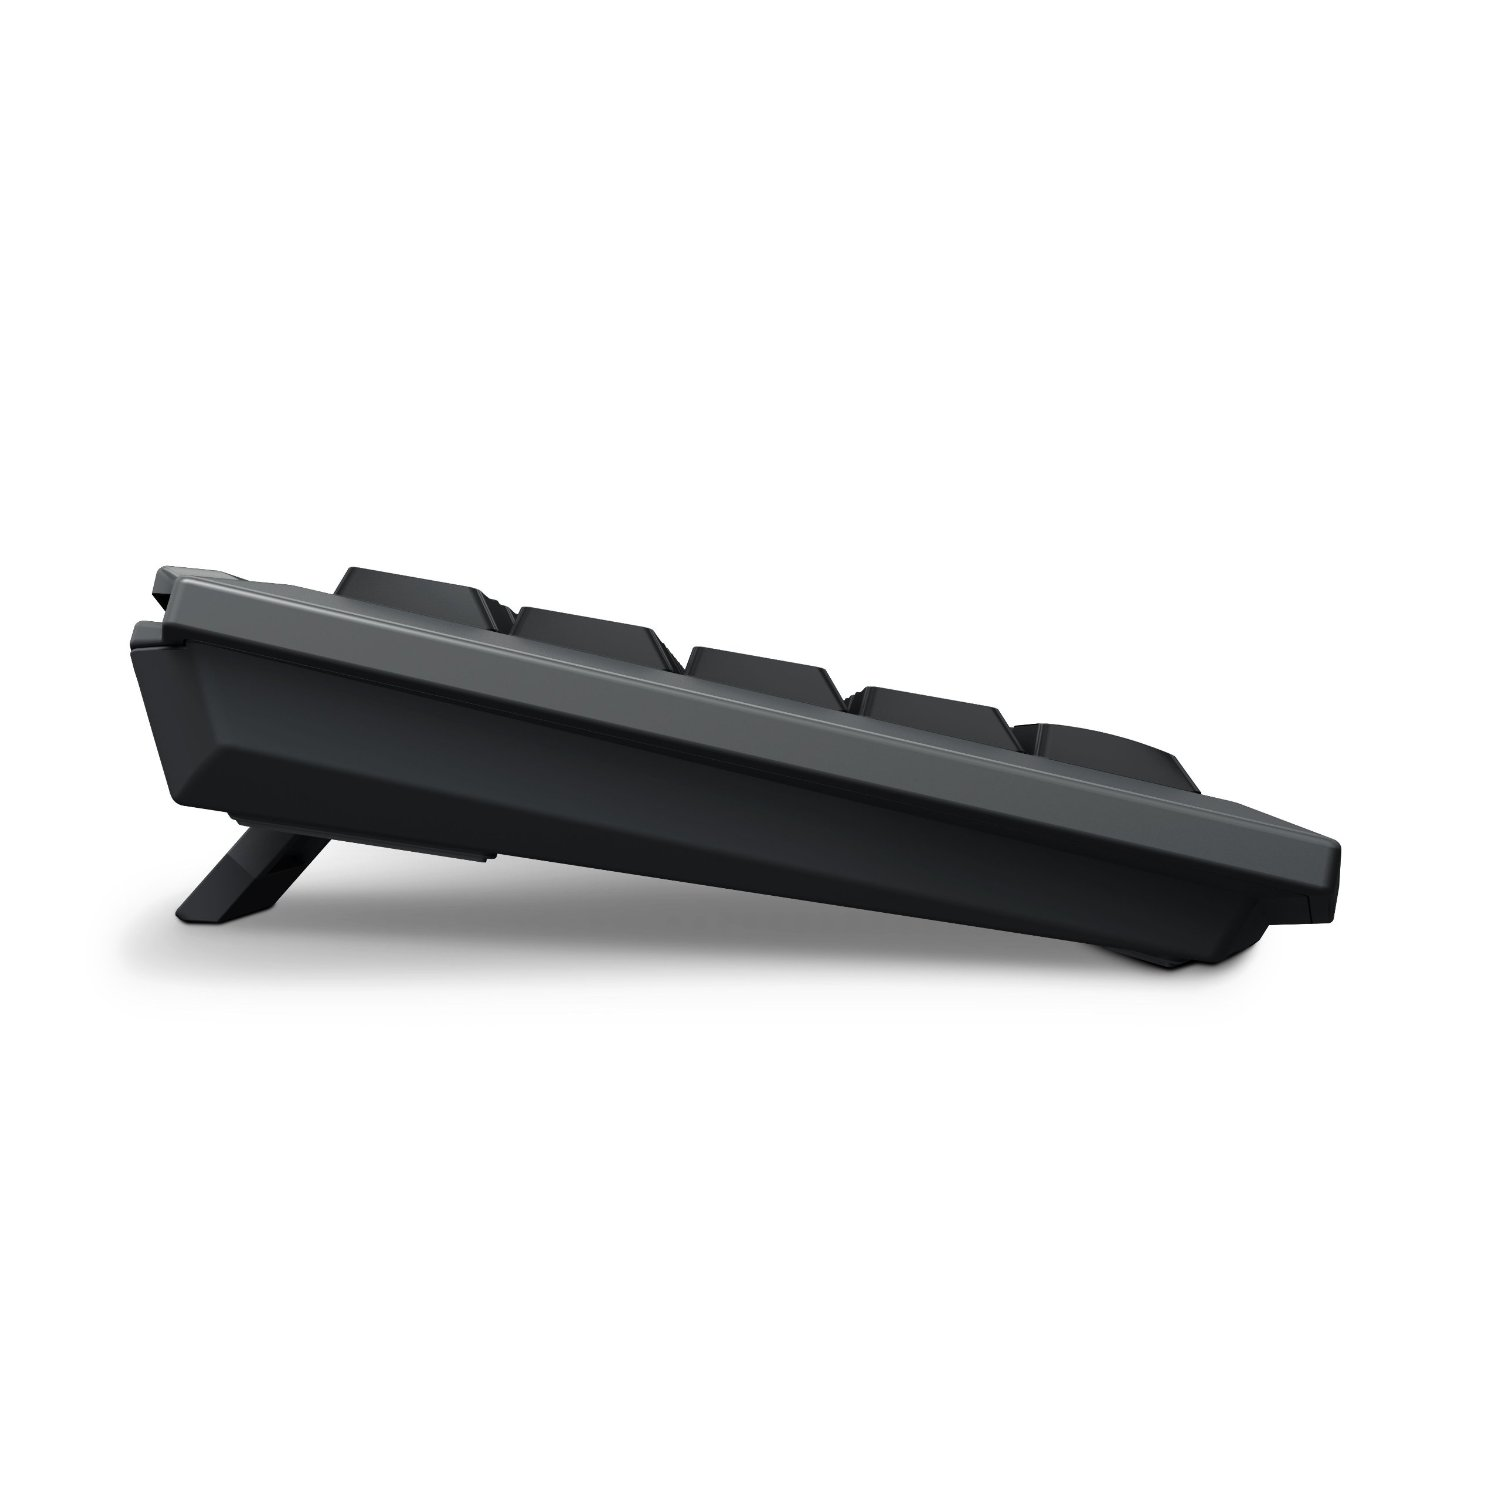 ROCCAT Arvo gaming keyboard, side view